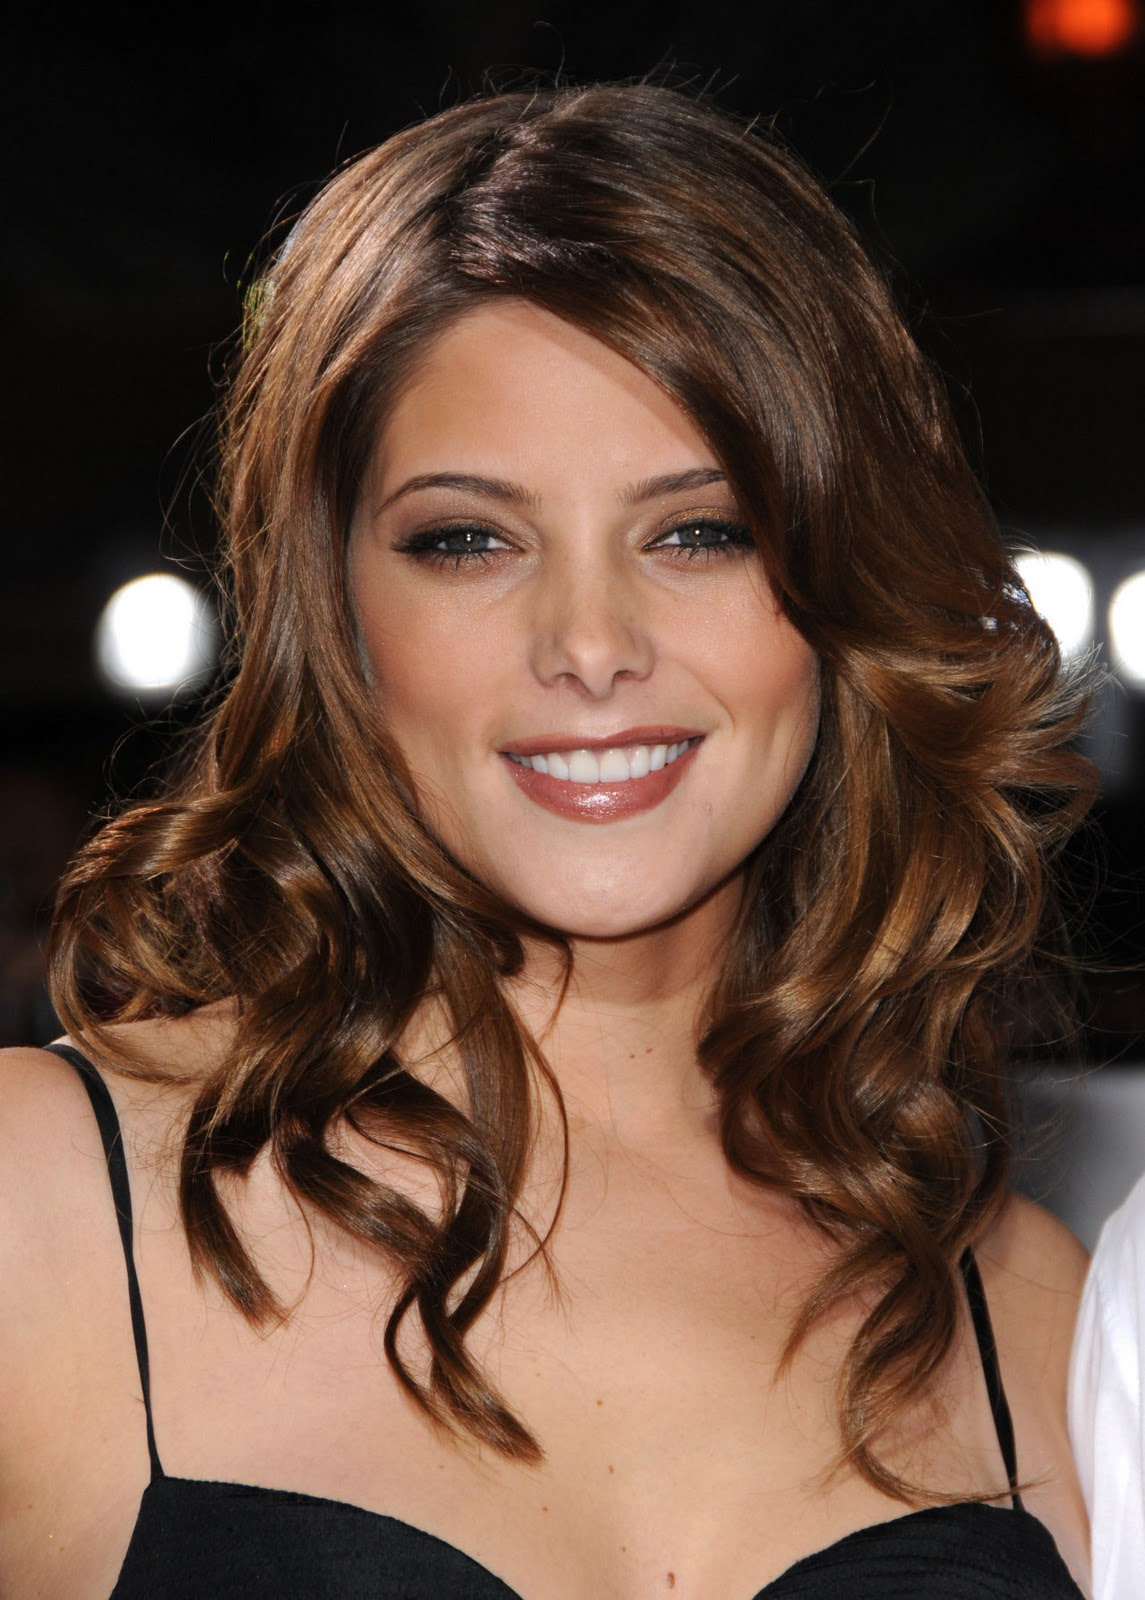 http://2.bp.blogspot.com/-IP9Q0OparYI/T6DCxv5gq_I/AAAAAAAAKS8/IQNQZ0jAS9w/s1600/foto-ashley-greene-17.jpg